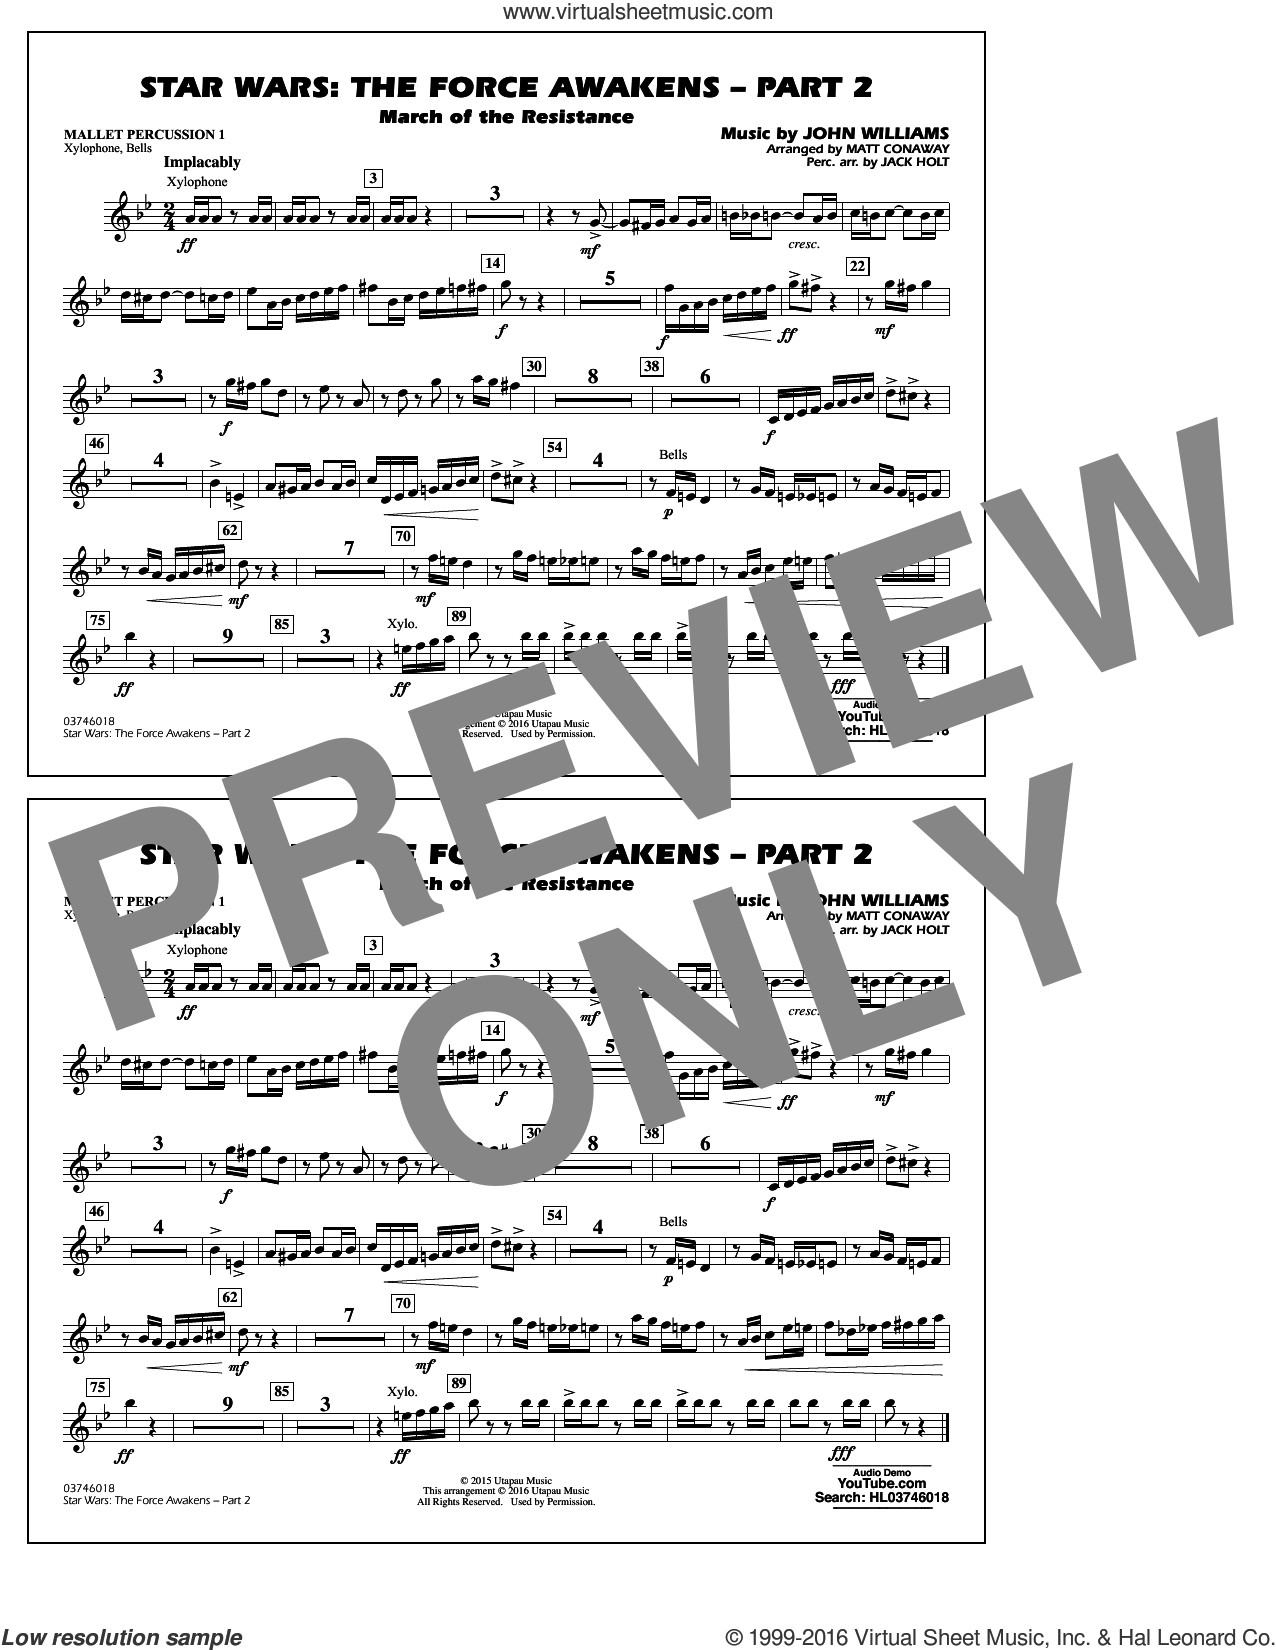 Star Wars: The Force Awakens, part 2 sheet music for marching band (mallet percussion 1) by John Williams and Matt Conaway, classical score, intermediate skill level